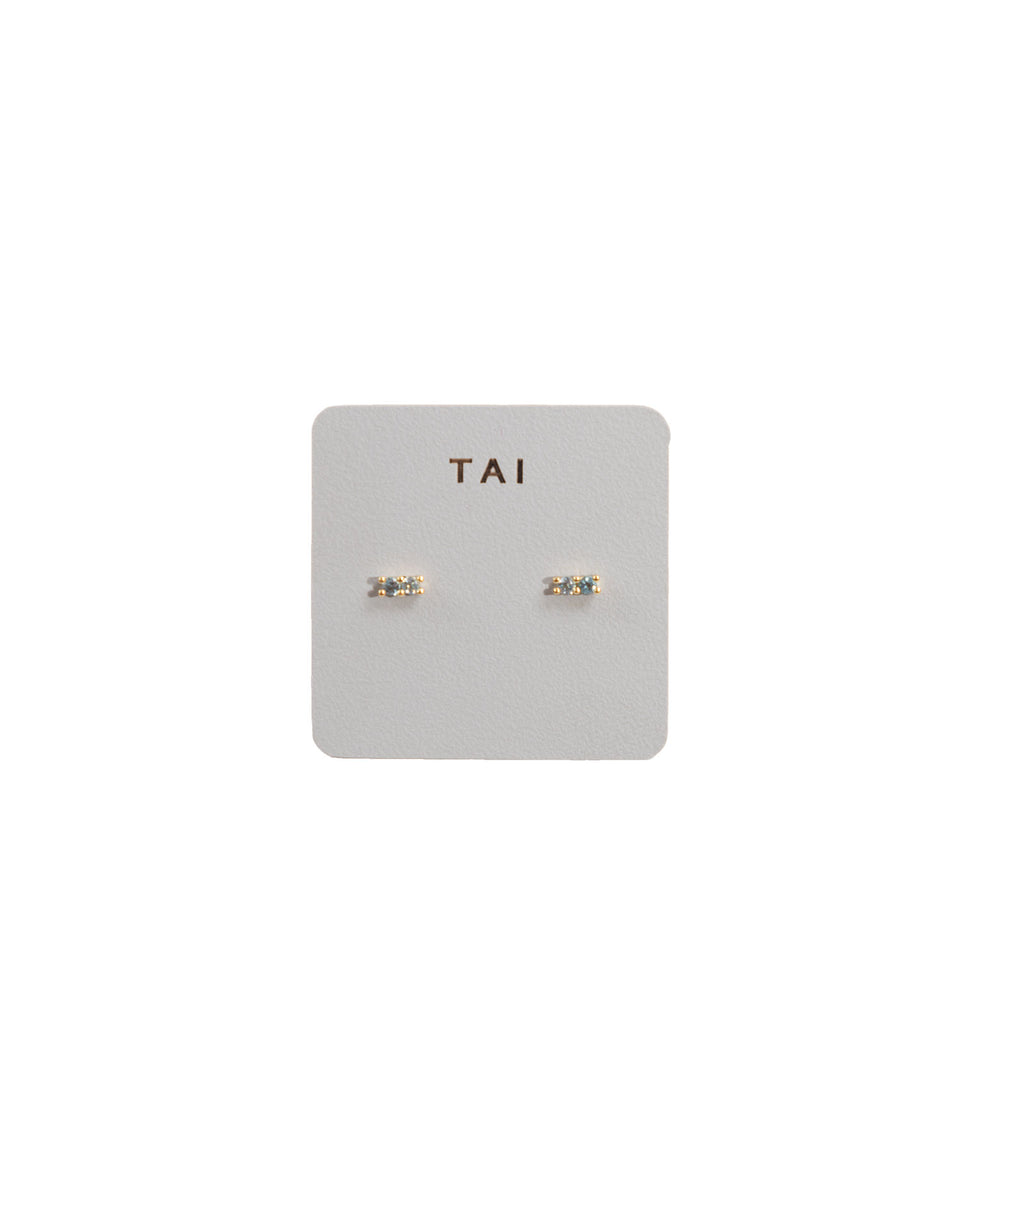 TAI Gold Mini Blue Stud Earrings